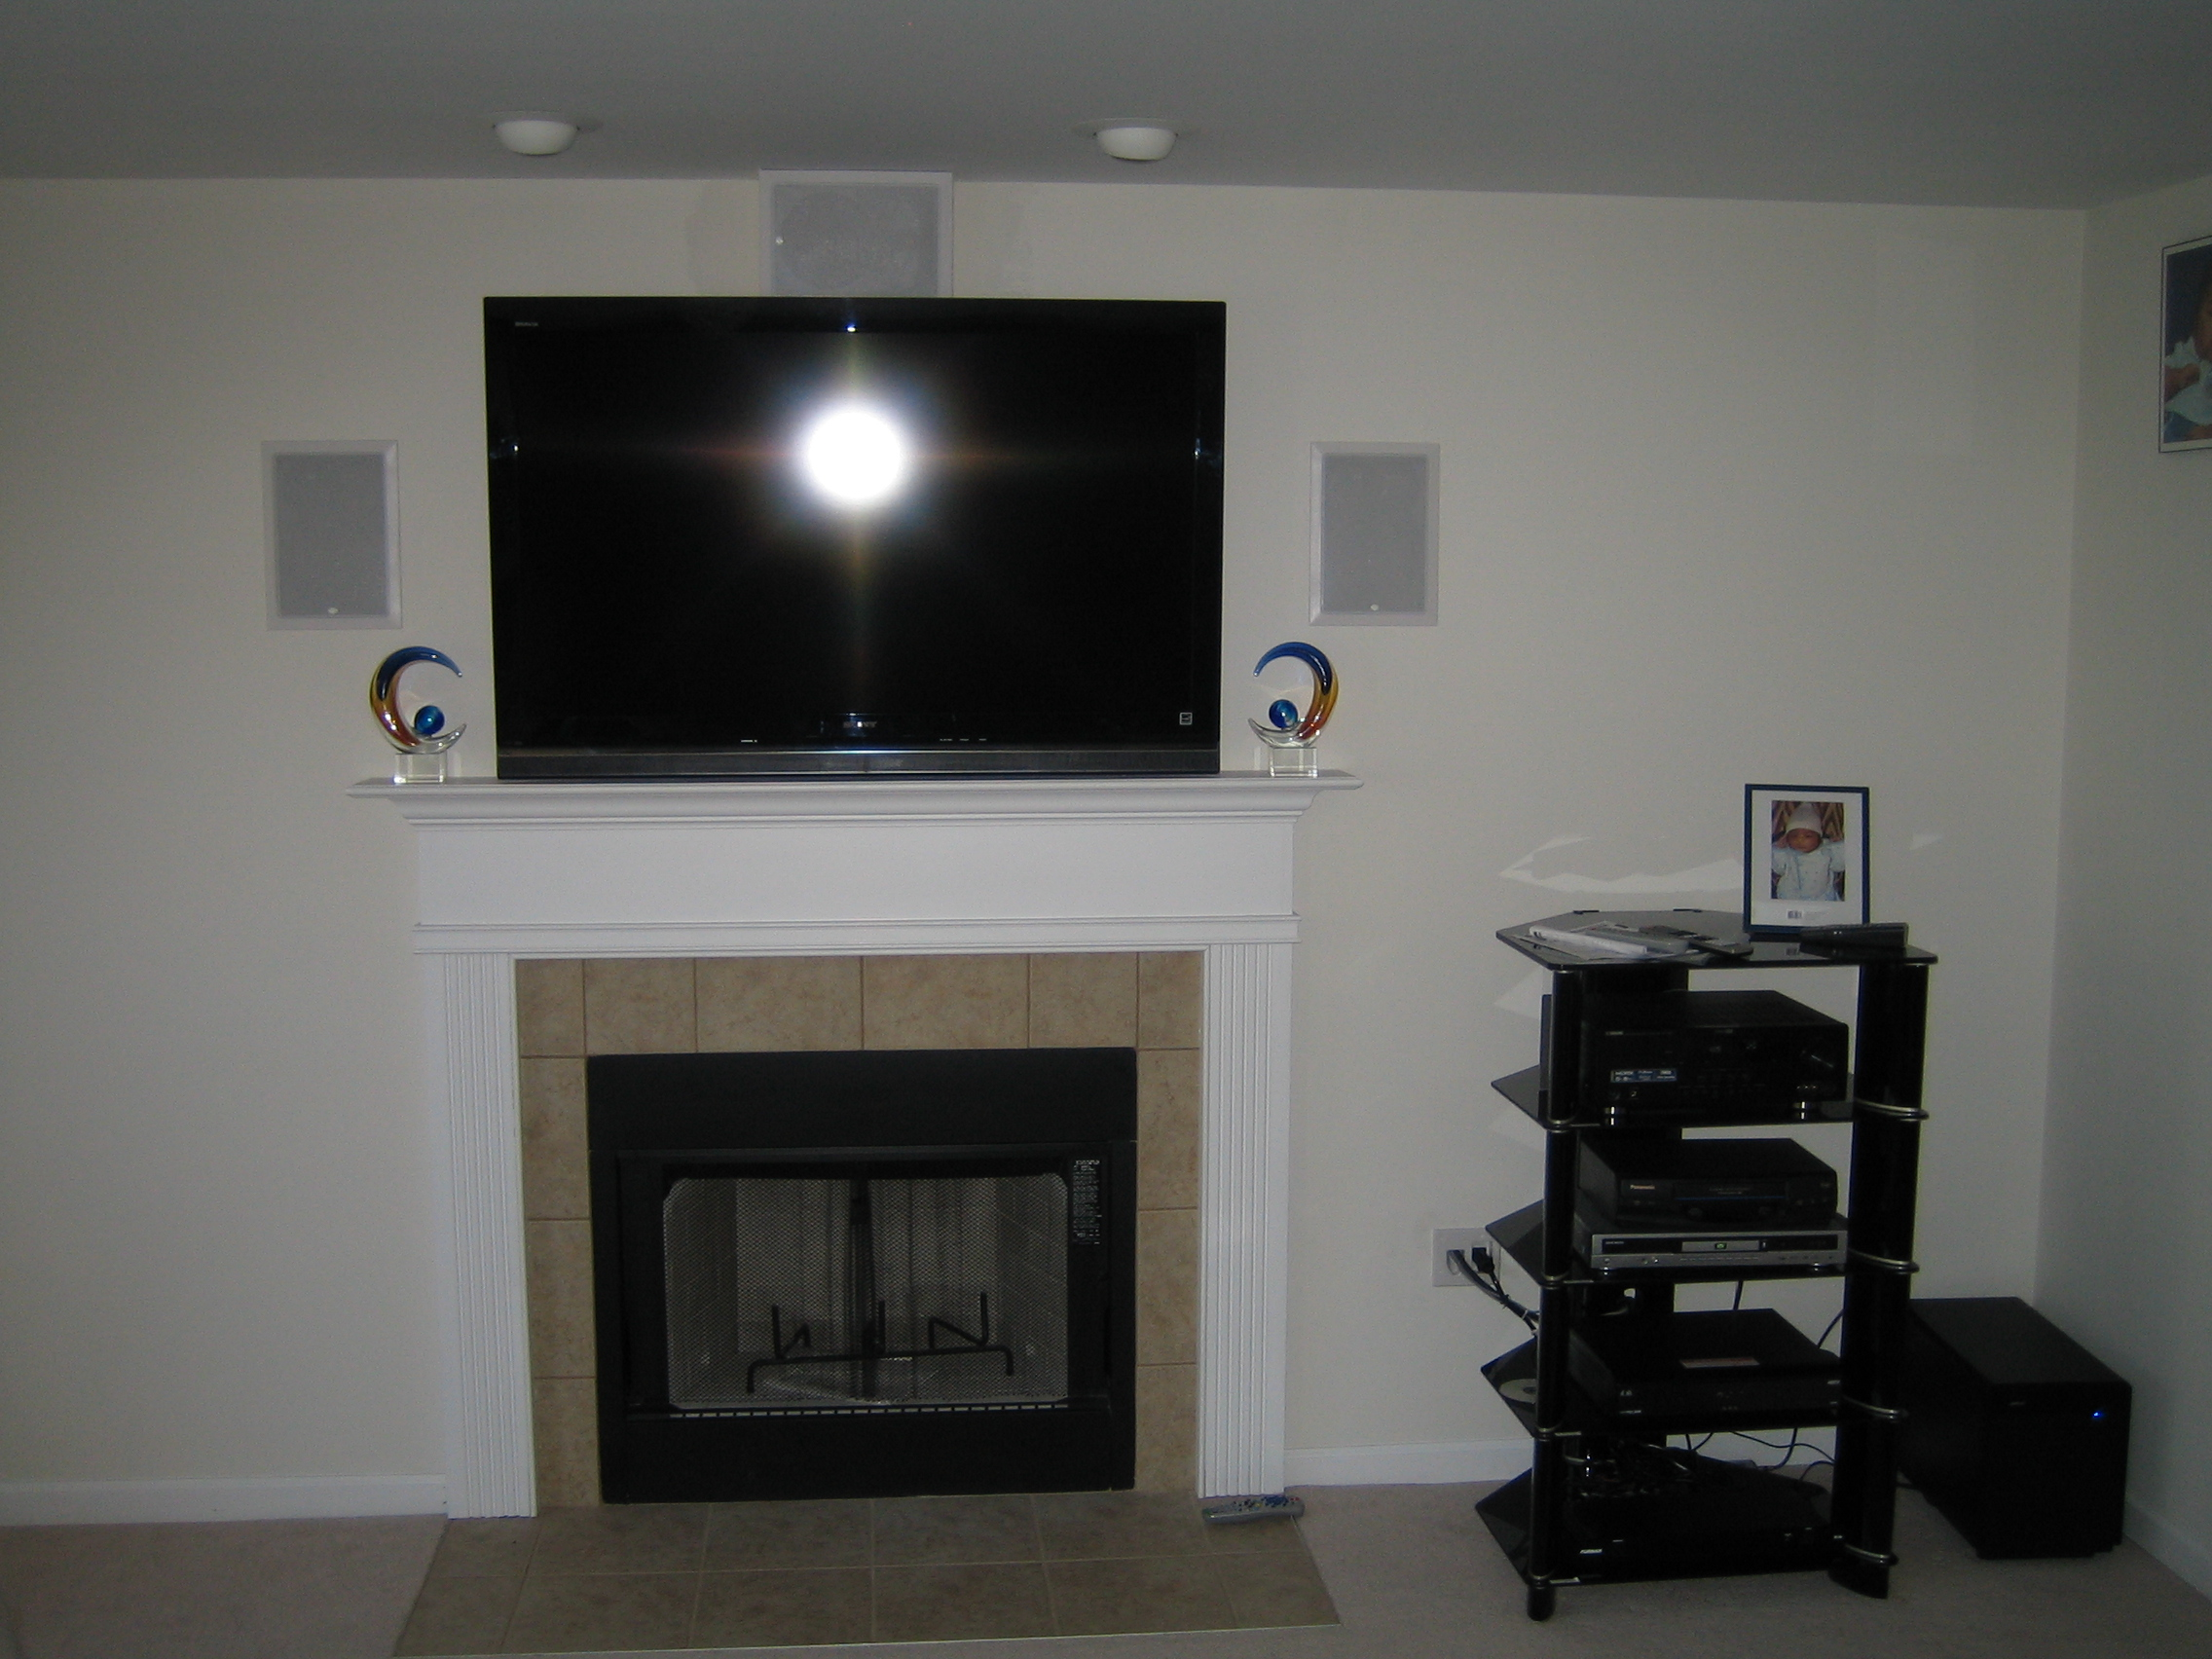 Woodbury Ct Tv Installation Above Fireplace further Img as well Norwalk Ct Tv Mounted Over Fireplace With All Wires Concealed Img together with Corner Tv Mounted Over White Fireplace As Well As Hiding Wires For Wall Mounted Tv Over Fireplace Also Mounting Tv Above Fireplace Running Cables X furthermore Pto. on tvs mounted over fireplace with wires